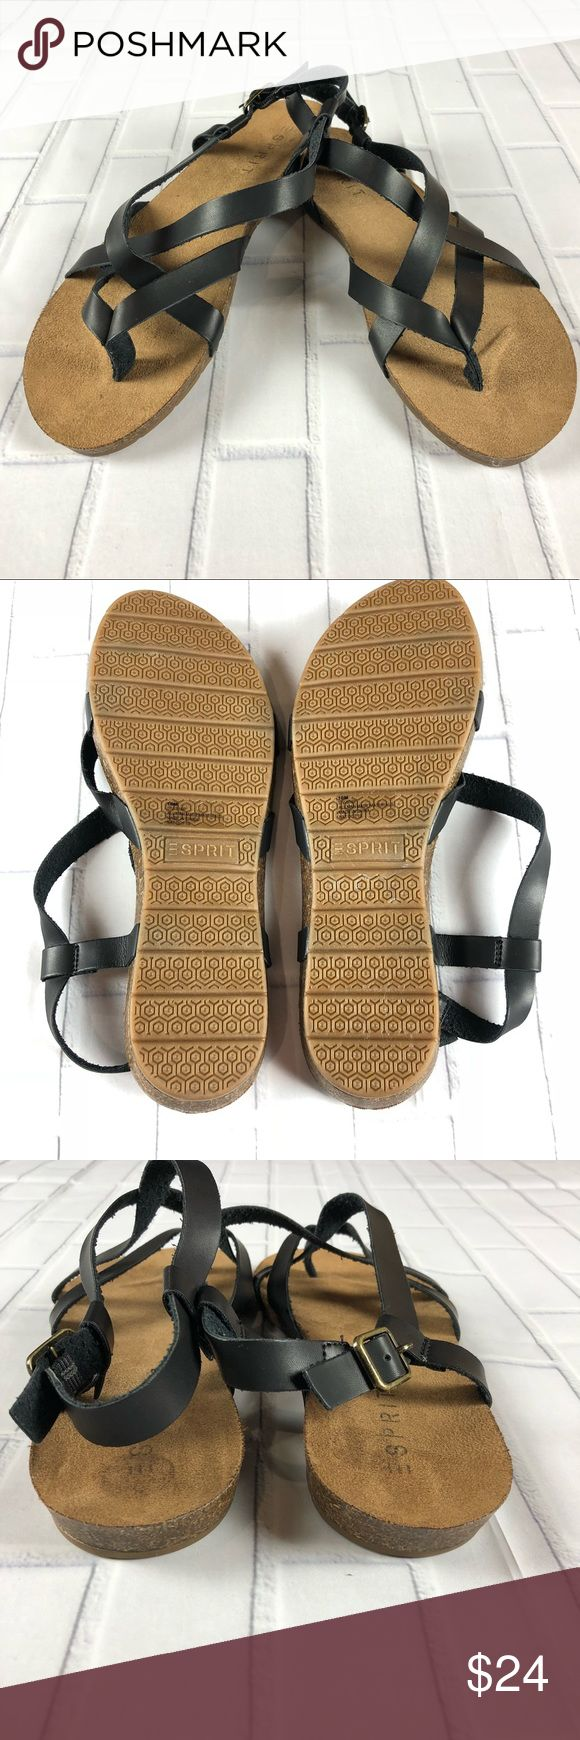 """ESPRIT LIV Strappy Sz 10 Cork Midsole NWOB Defect Esprit Womens Liv Sandals LIV-S16P  Color-Black  Size-10  Item Description-Synthetic Rubber Sole  Heel Measures- Approximately 0.75 inches""""  Buckle Closure  Suede Like Sock  Cork Midsole  Sturdy Rubber Sole Provides Ground-Gripping Traction  Condition-NWOB Defect-small amount of sticker residue on heel, see pictures. No other flaws. Esprit Shoes Sandals"""